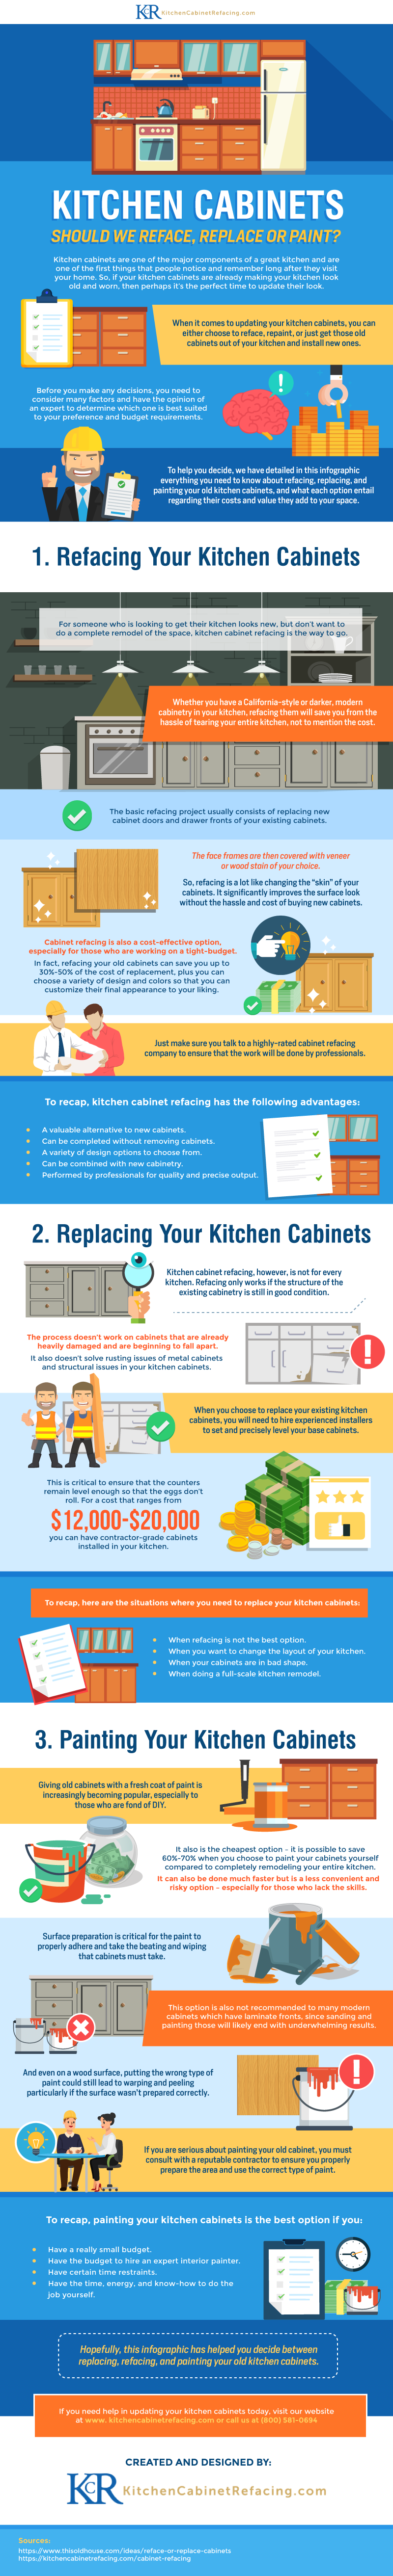 Kitchen Cabinet Makeovers:  Reface, Replace or RePaint? - Infographic